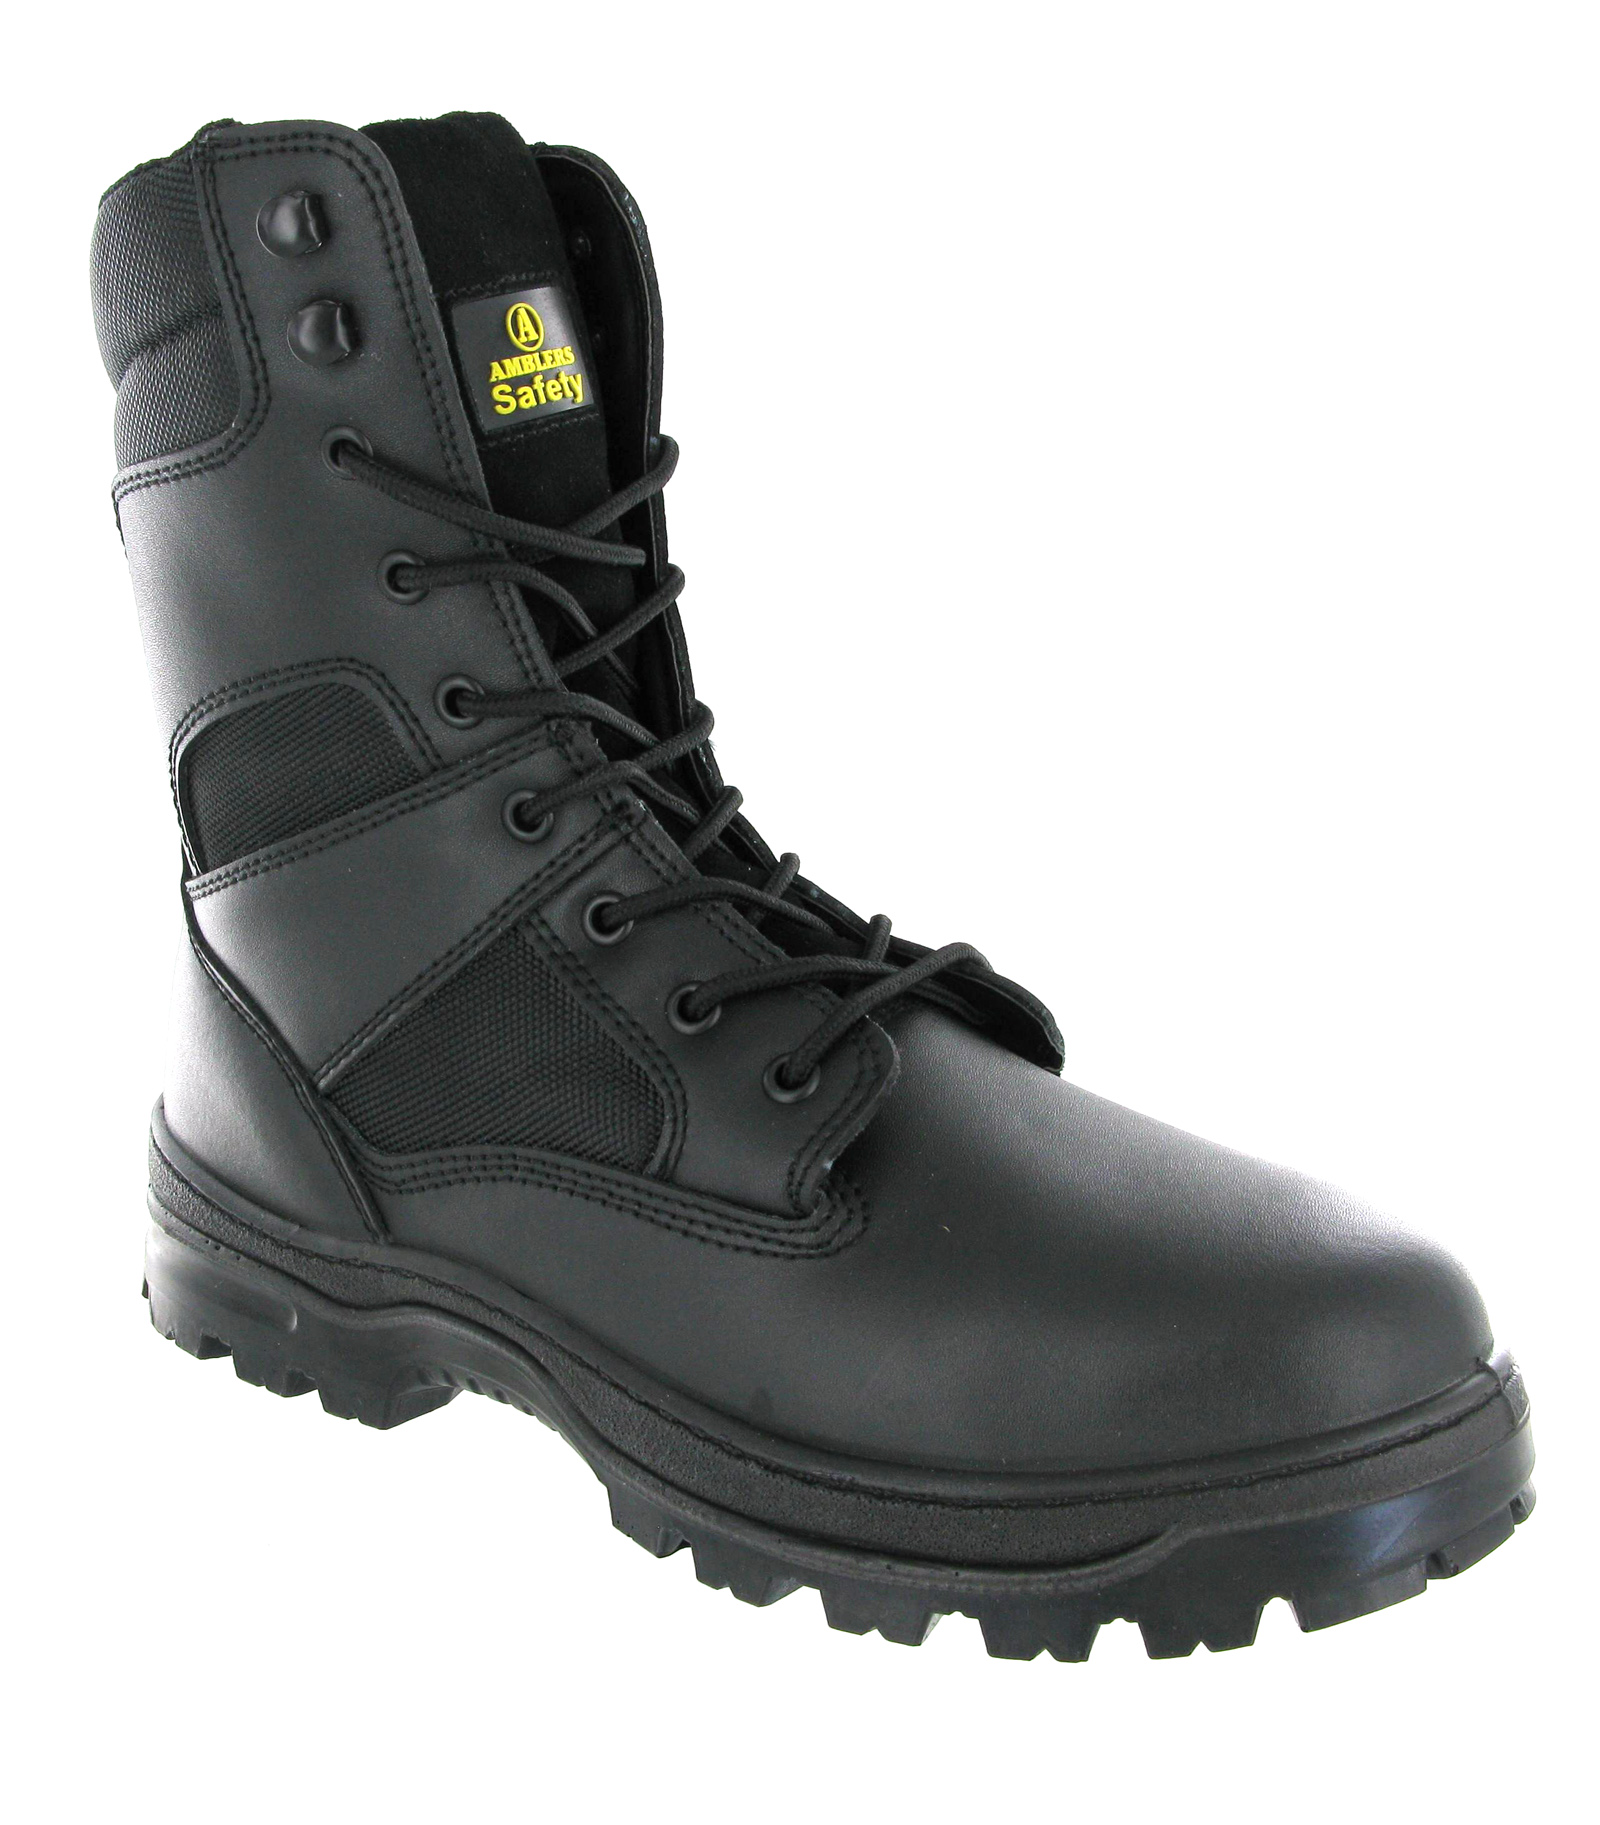 Mens Amblers Army Police Tactical Leather Combat Safety Toe Cap Boots Size 4-14 | EBay